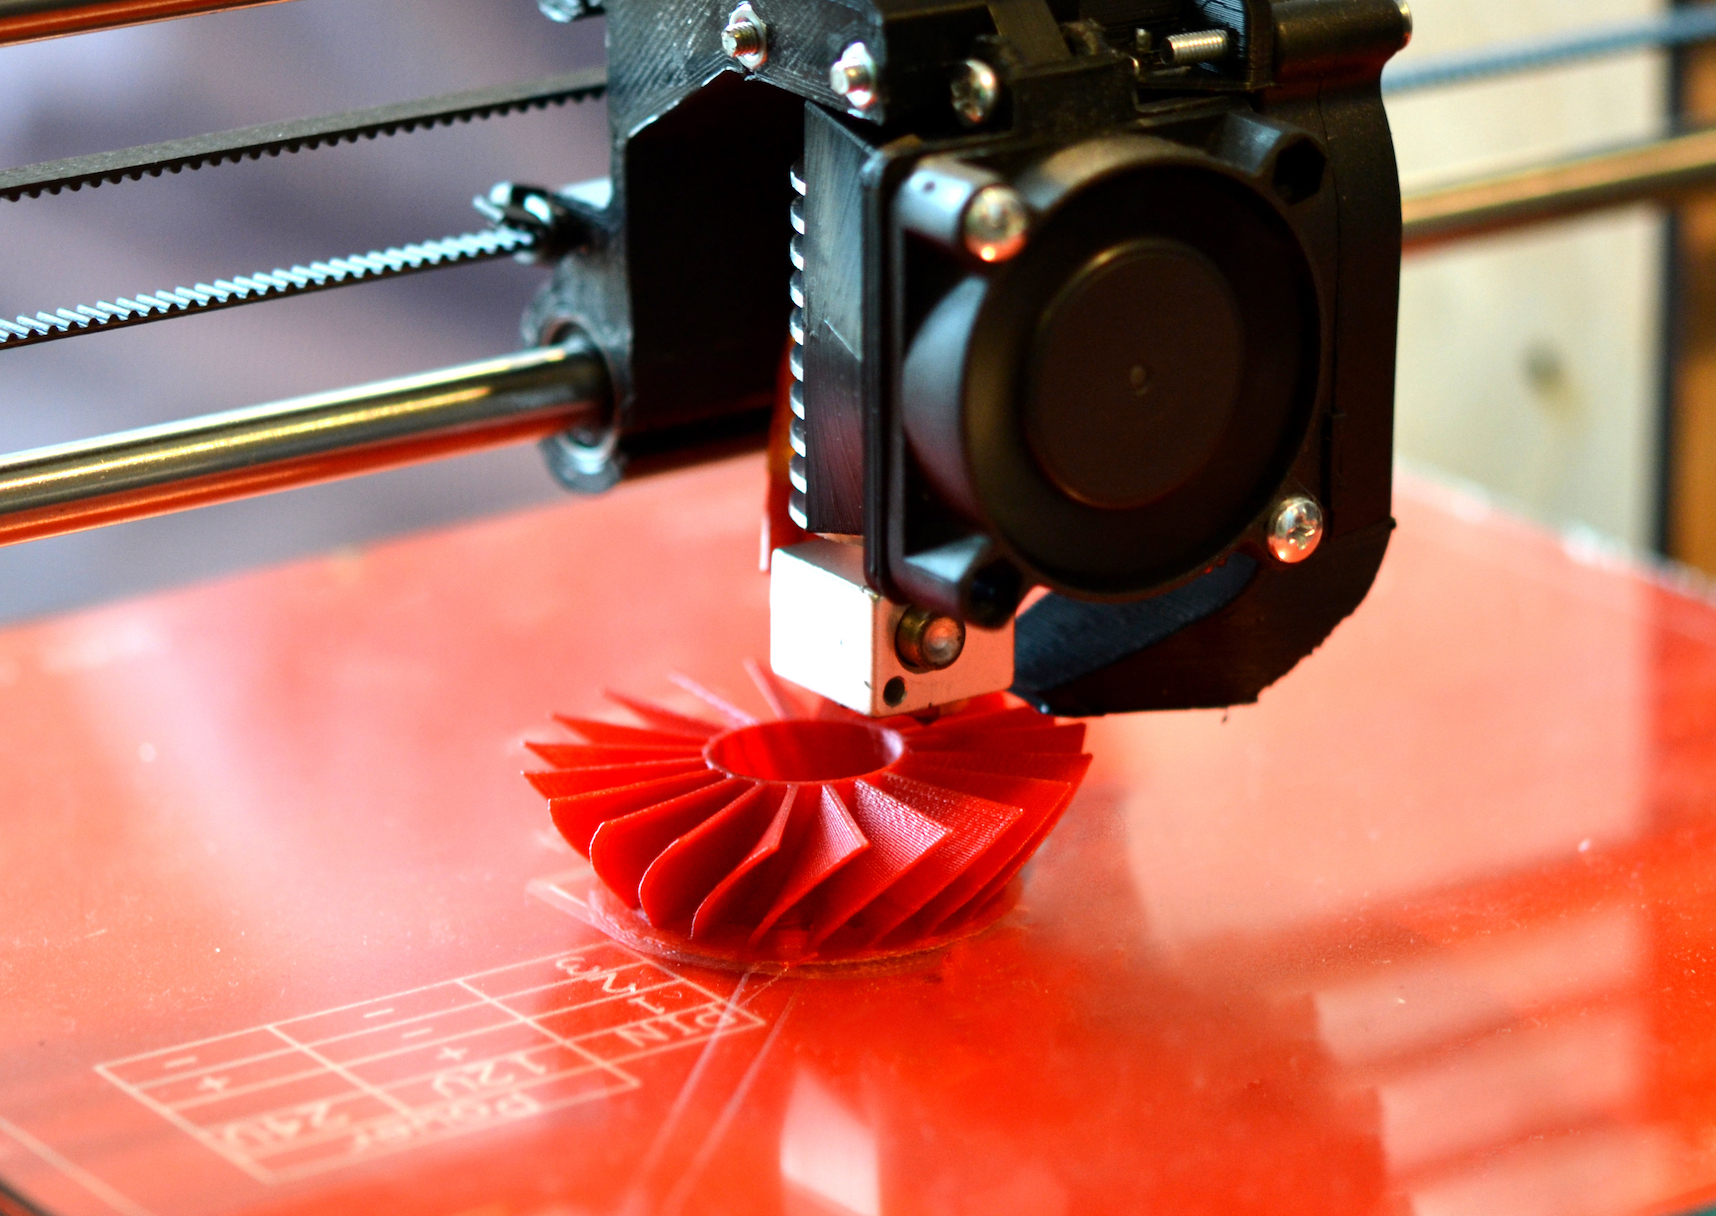 3-D printing has been used to make everything from car parts to gadgets and toys, and even artificial organs. But now, a new study has found promising applications in creating customizable food with 3-D printing.